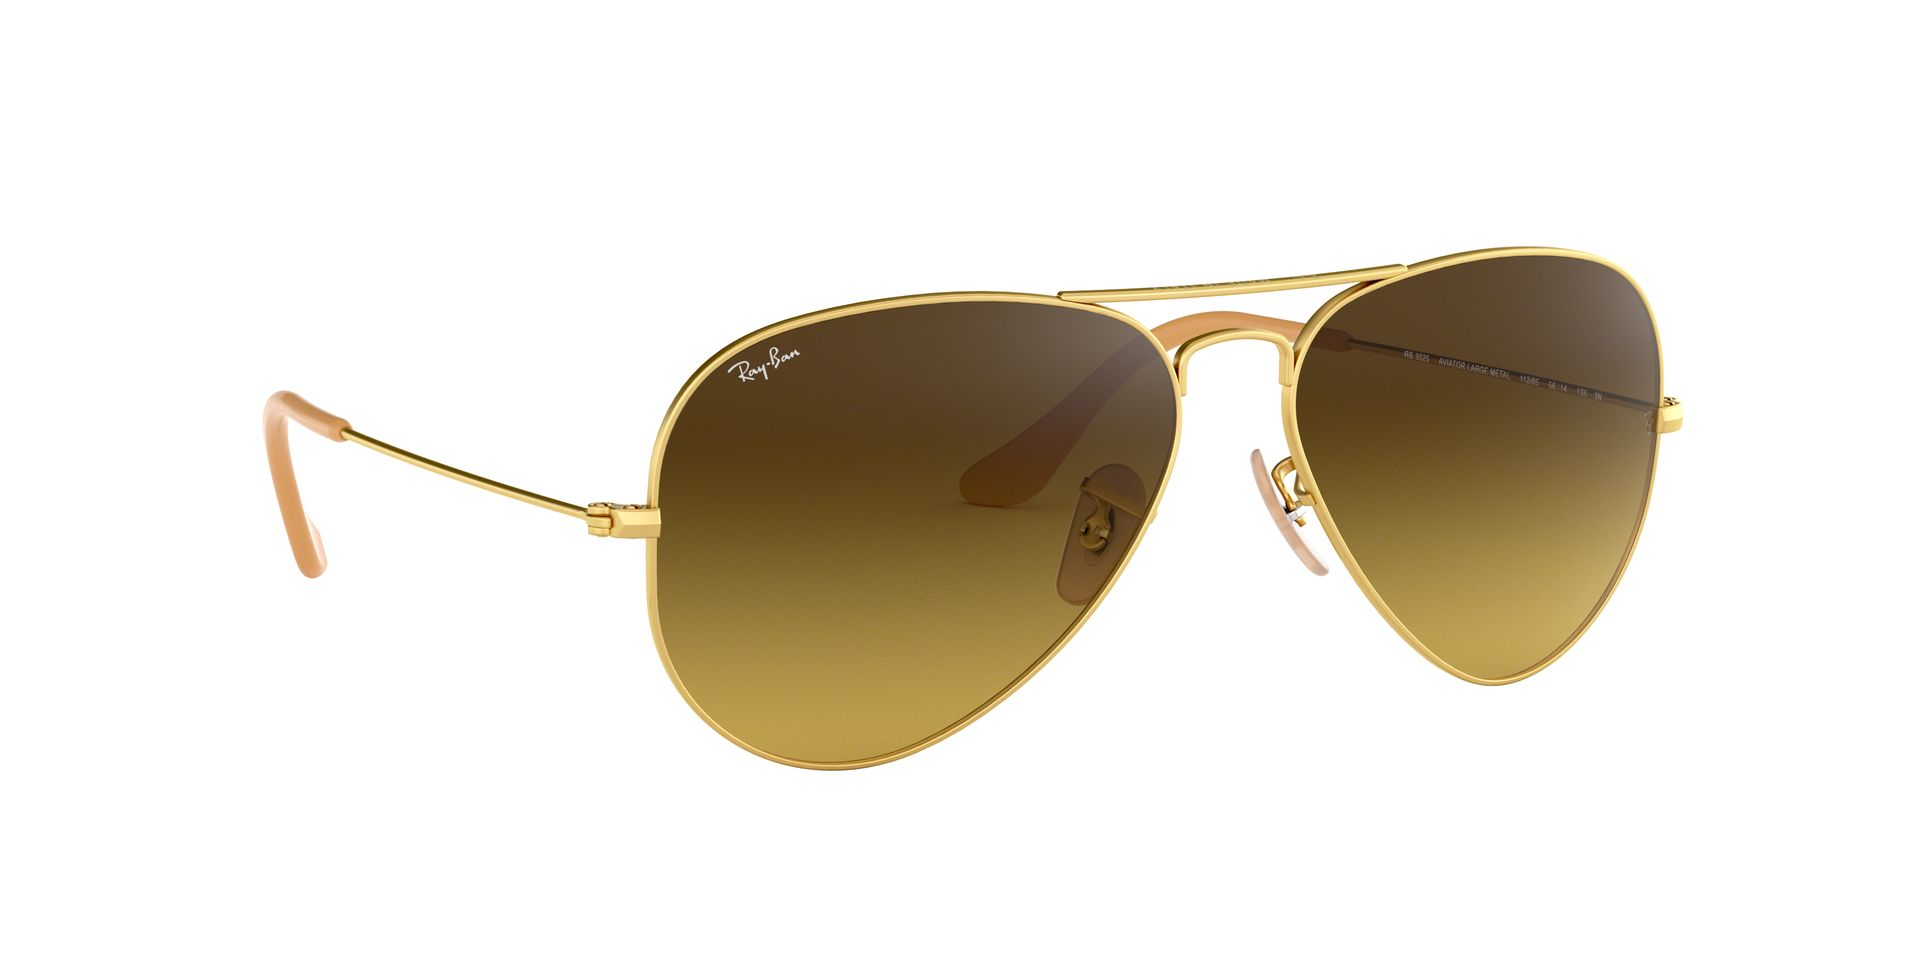 4d7f61a24e Brillenchic-onlineshop in Berlin - Ray Ban AVIATOR RB 3025 112/85